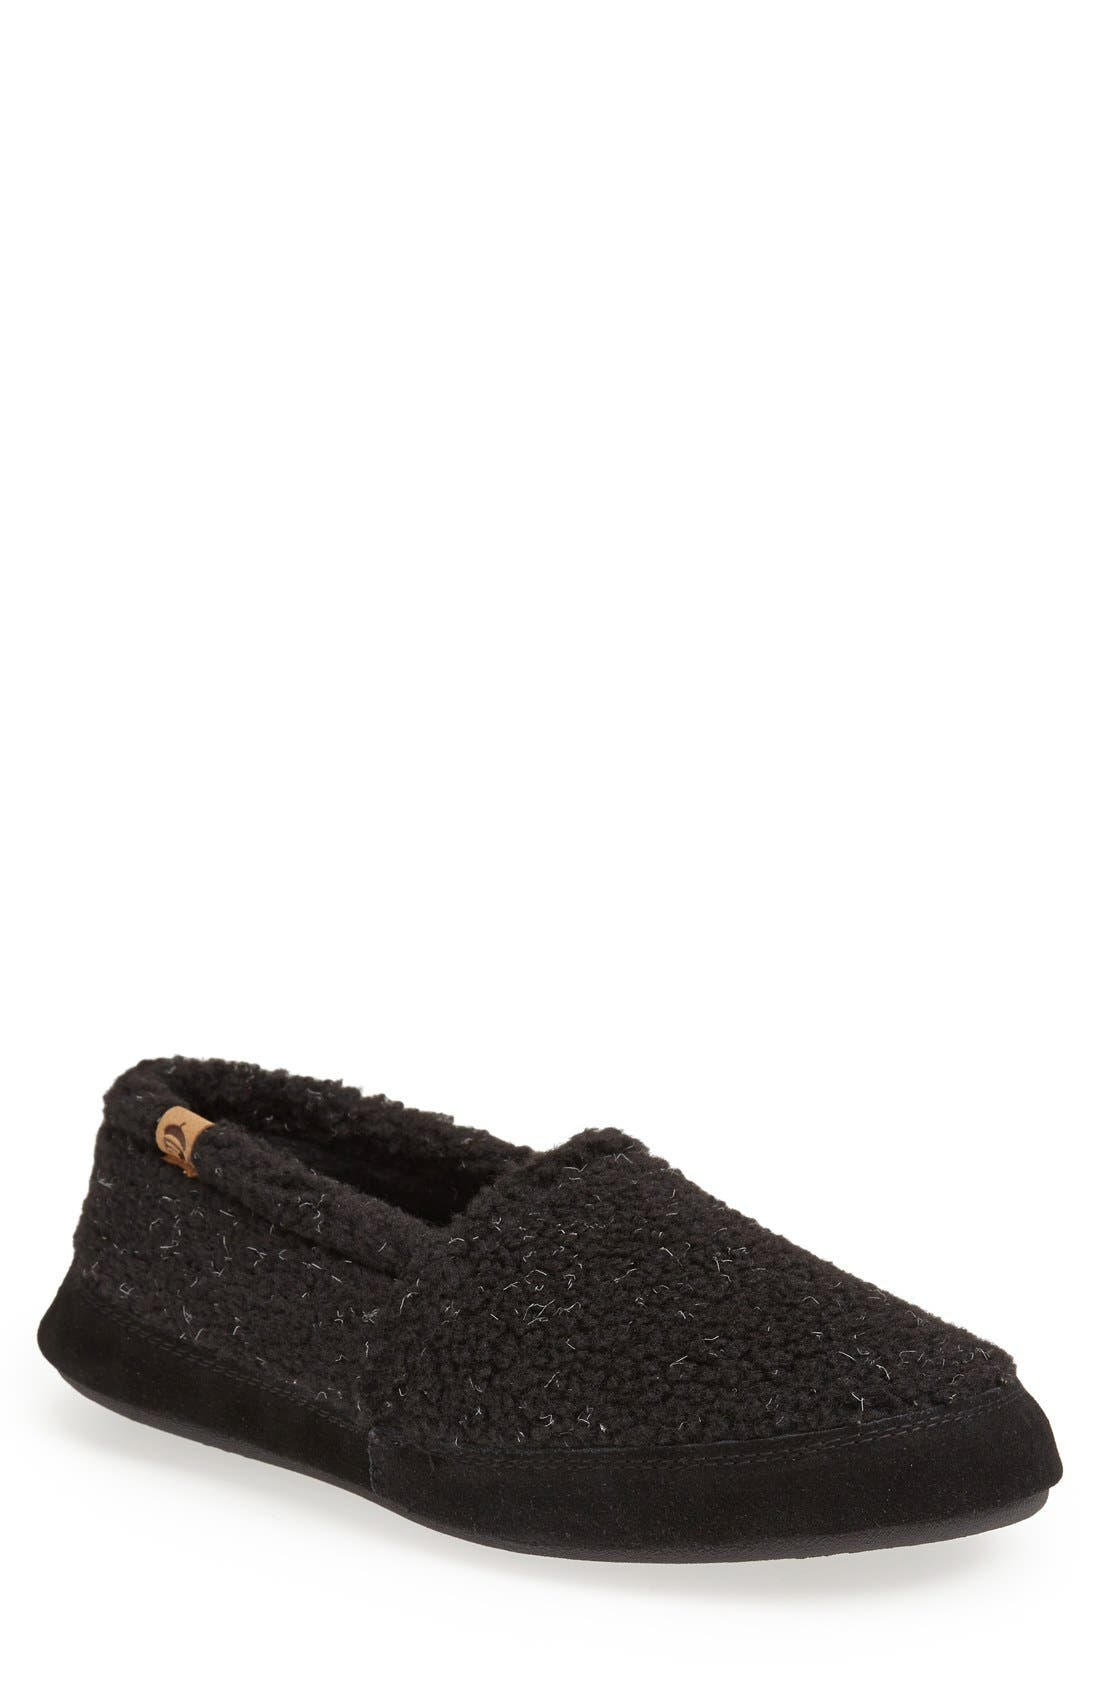 ACORN Moc Slipper in Dark Charcoal